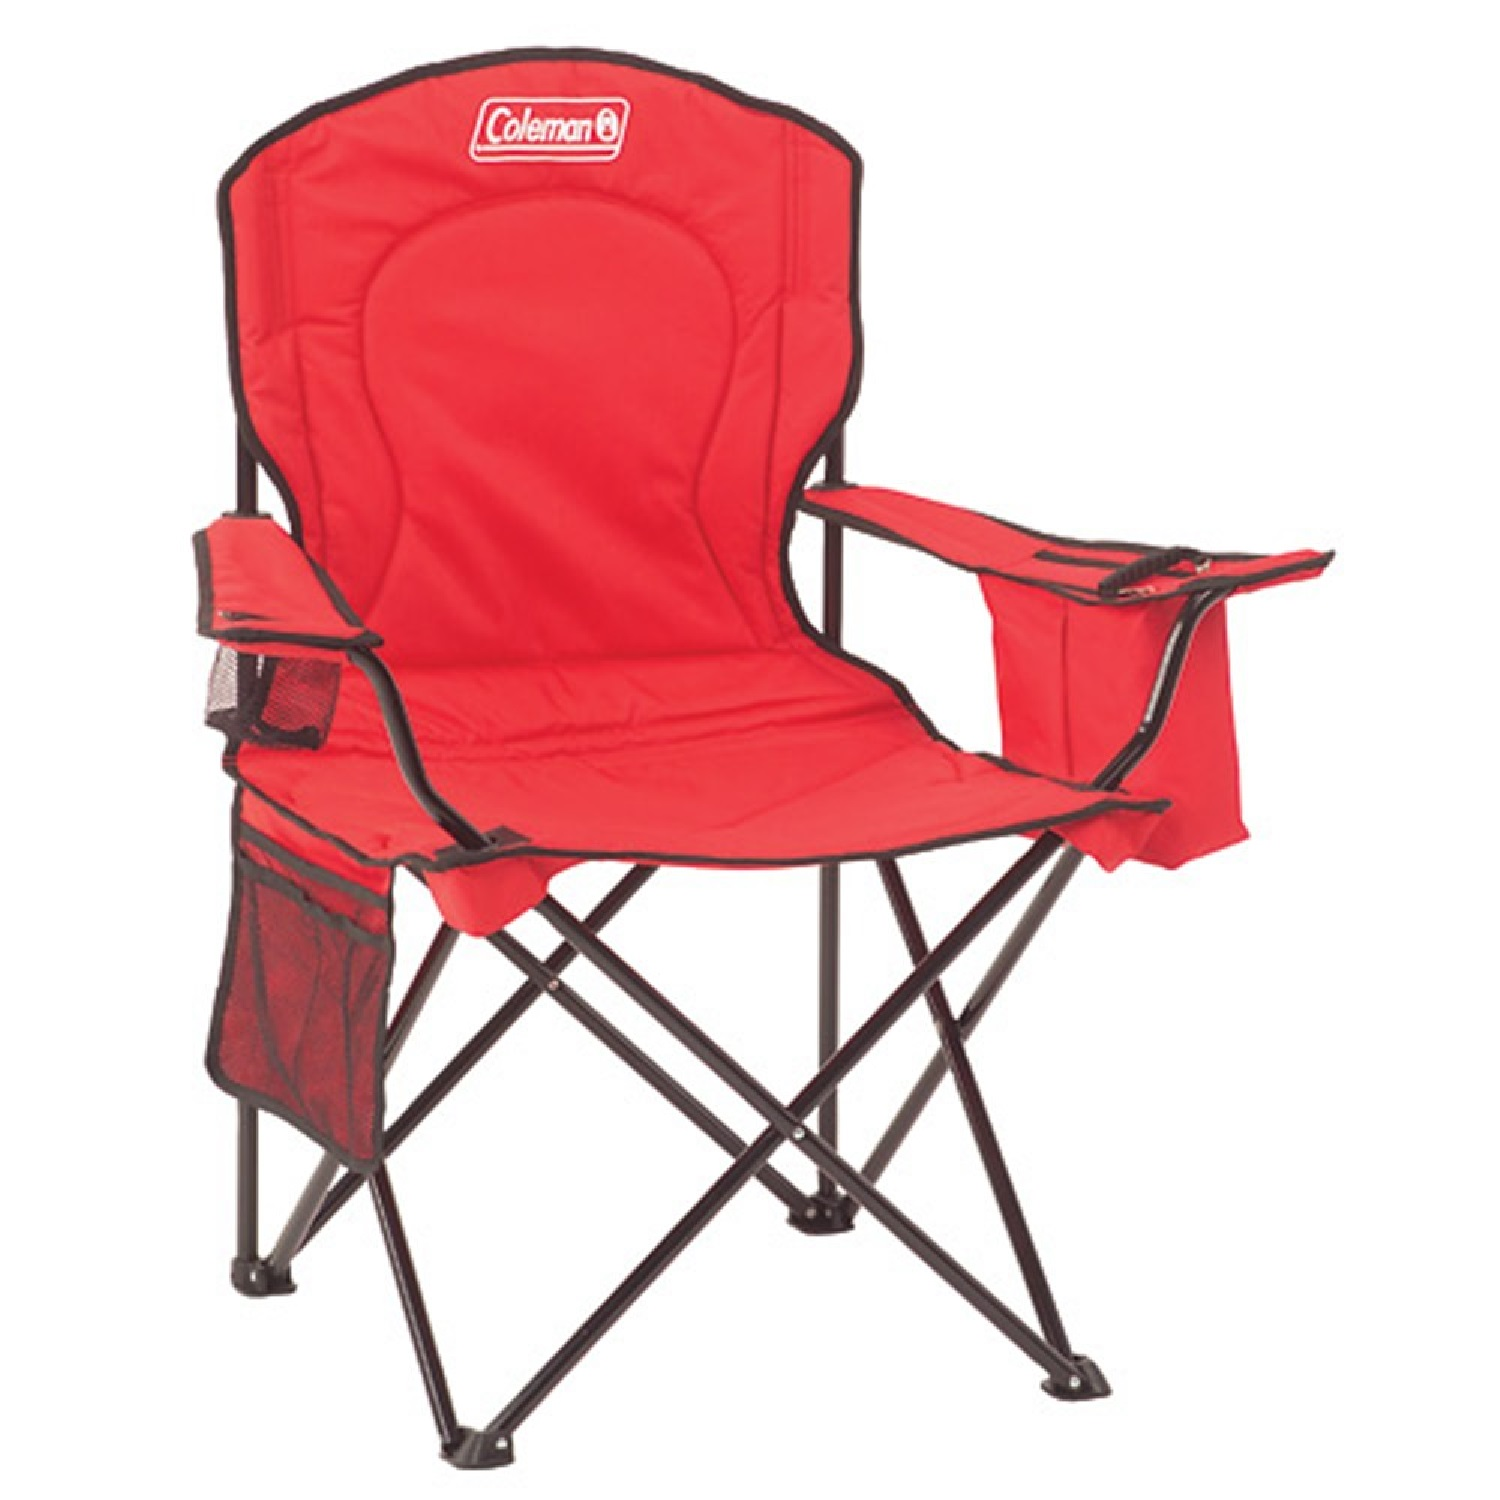 coleman oversized quad chair with cooler pouch bar table and set red 2000002189 fitness